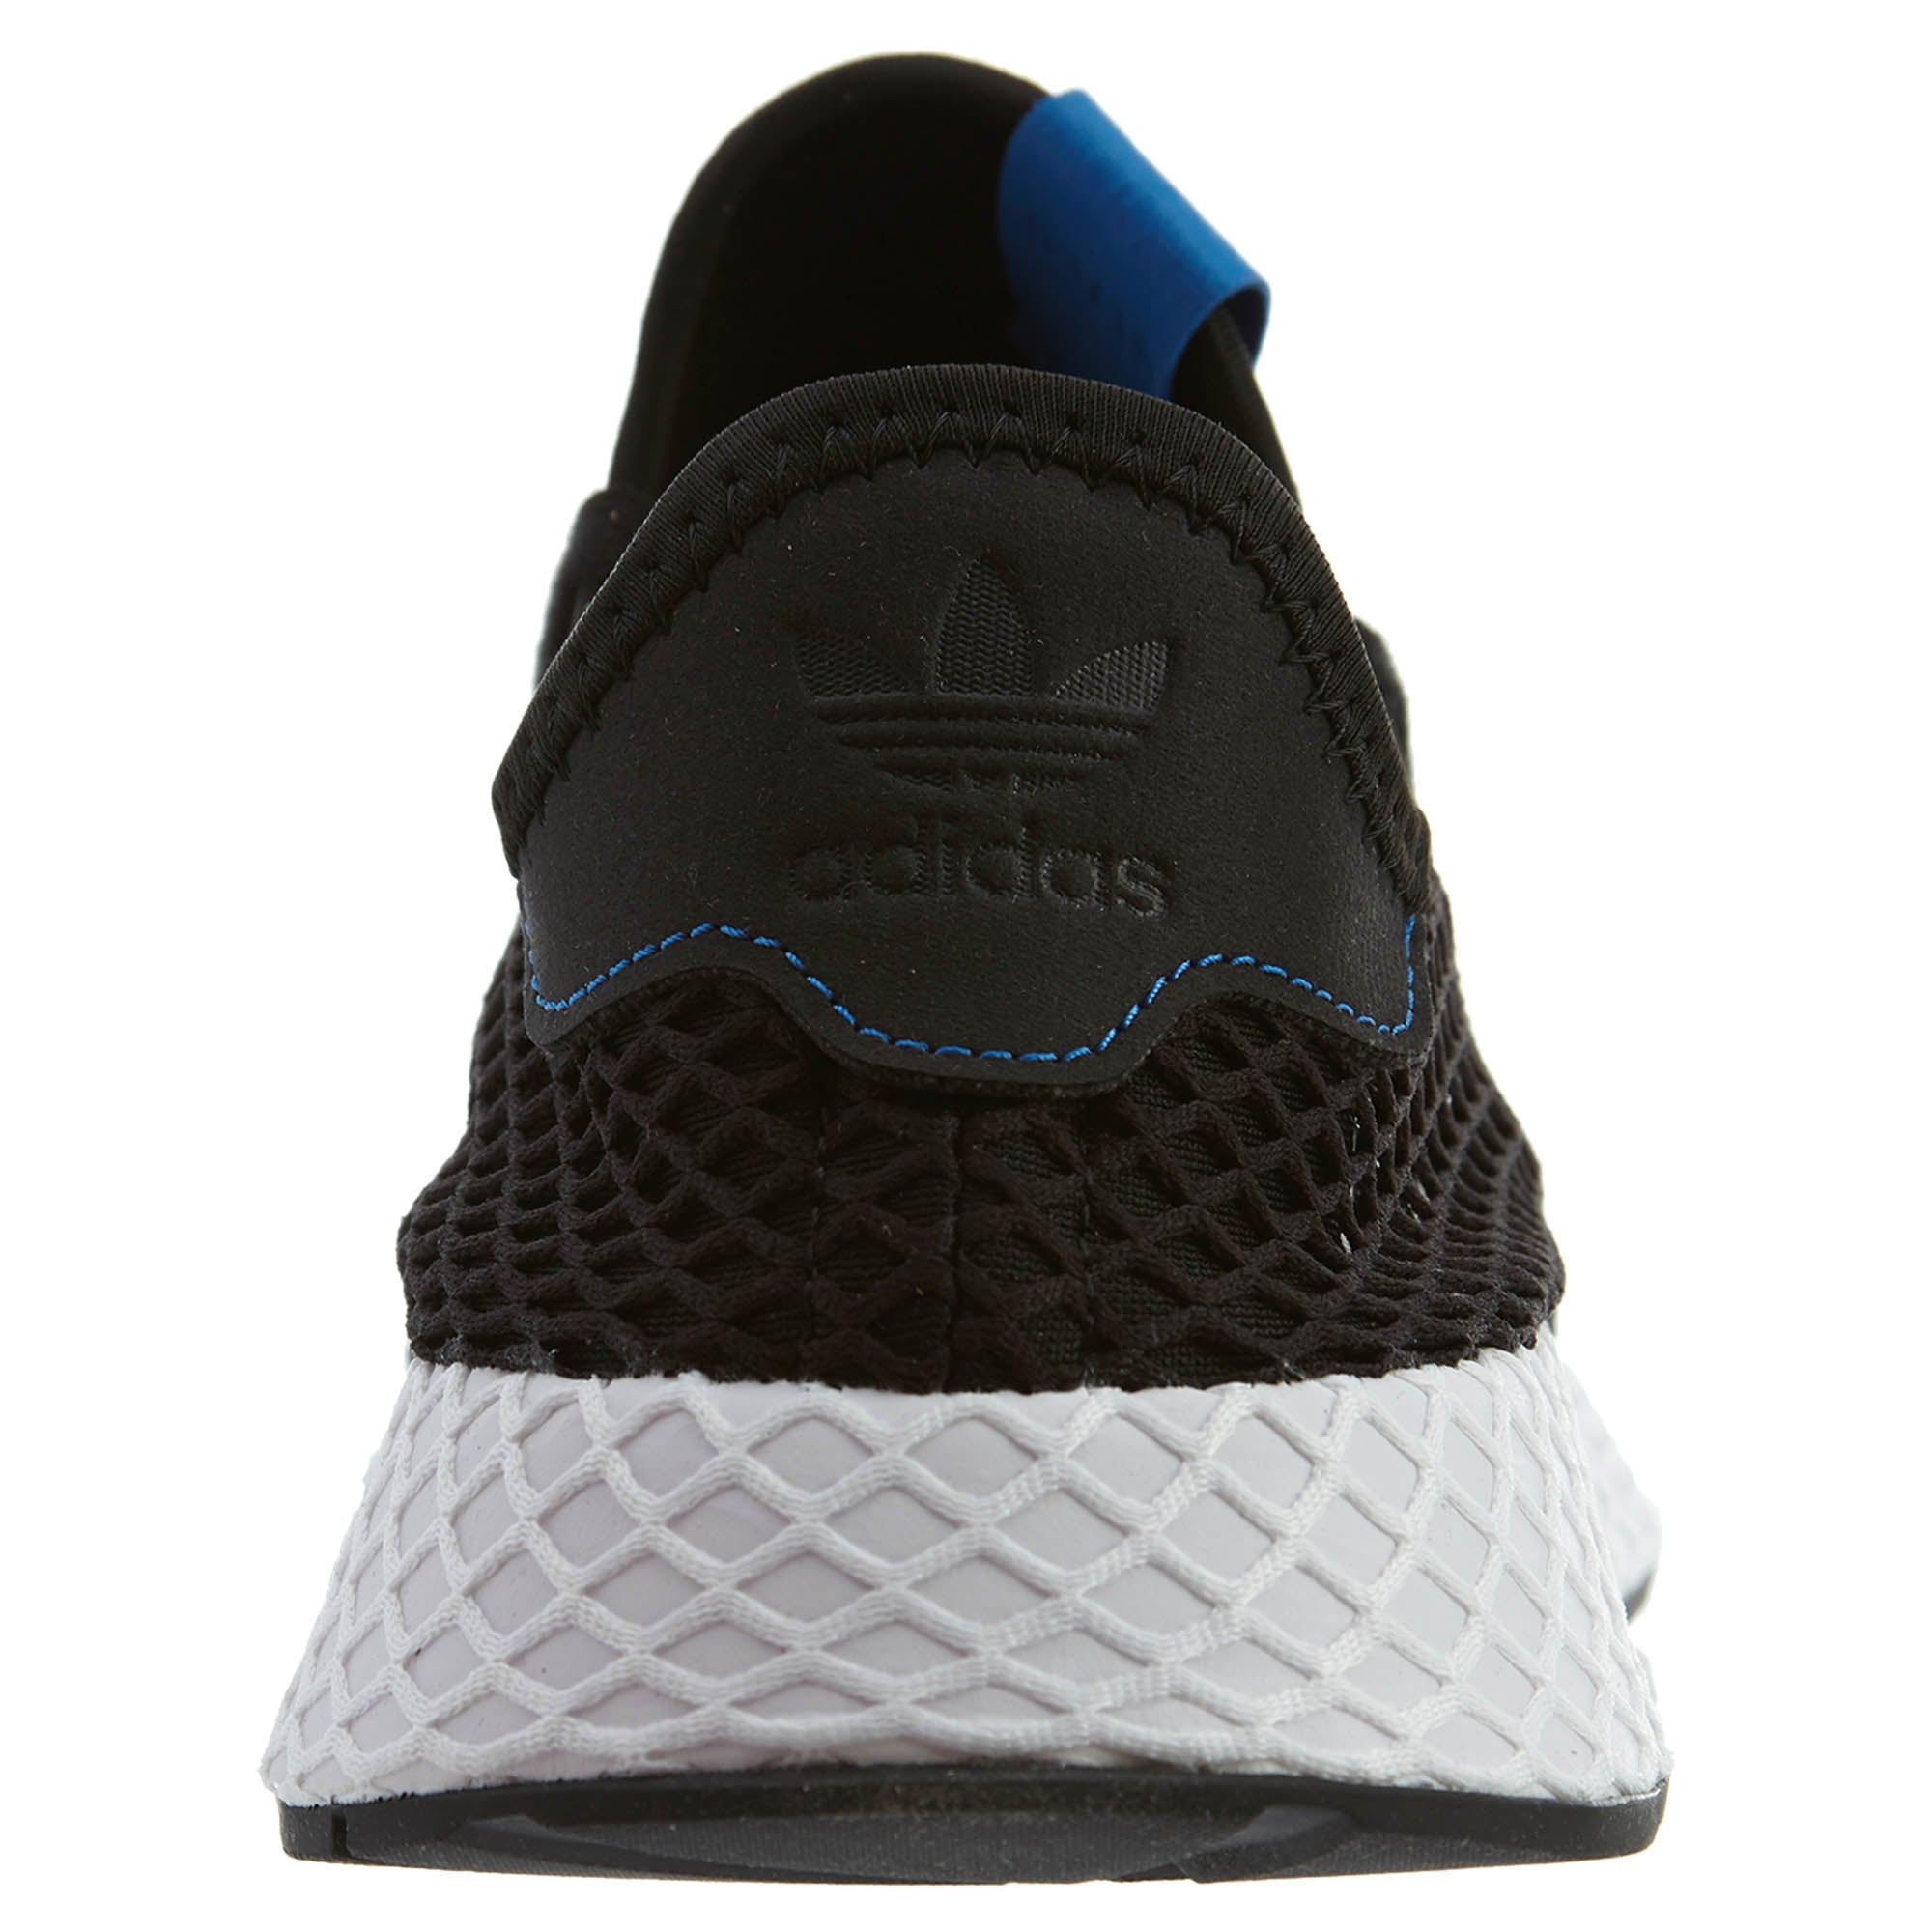 750a3cb49629a Adidas Deerupt Runner Mens Style   B42063-Blk. ADIDAS   Athletic Shoes    Sneakers